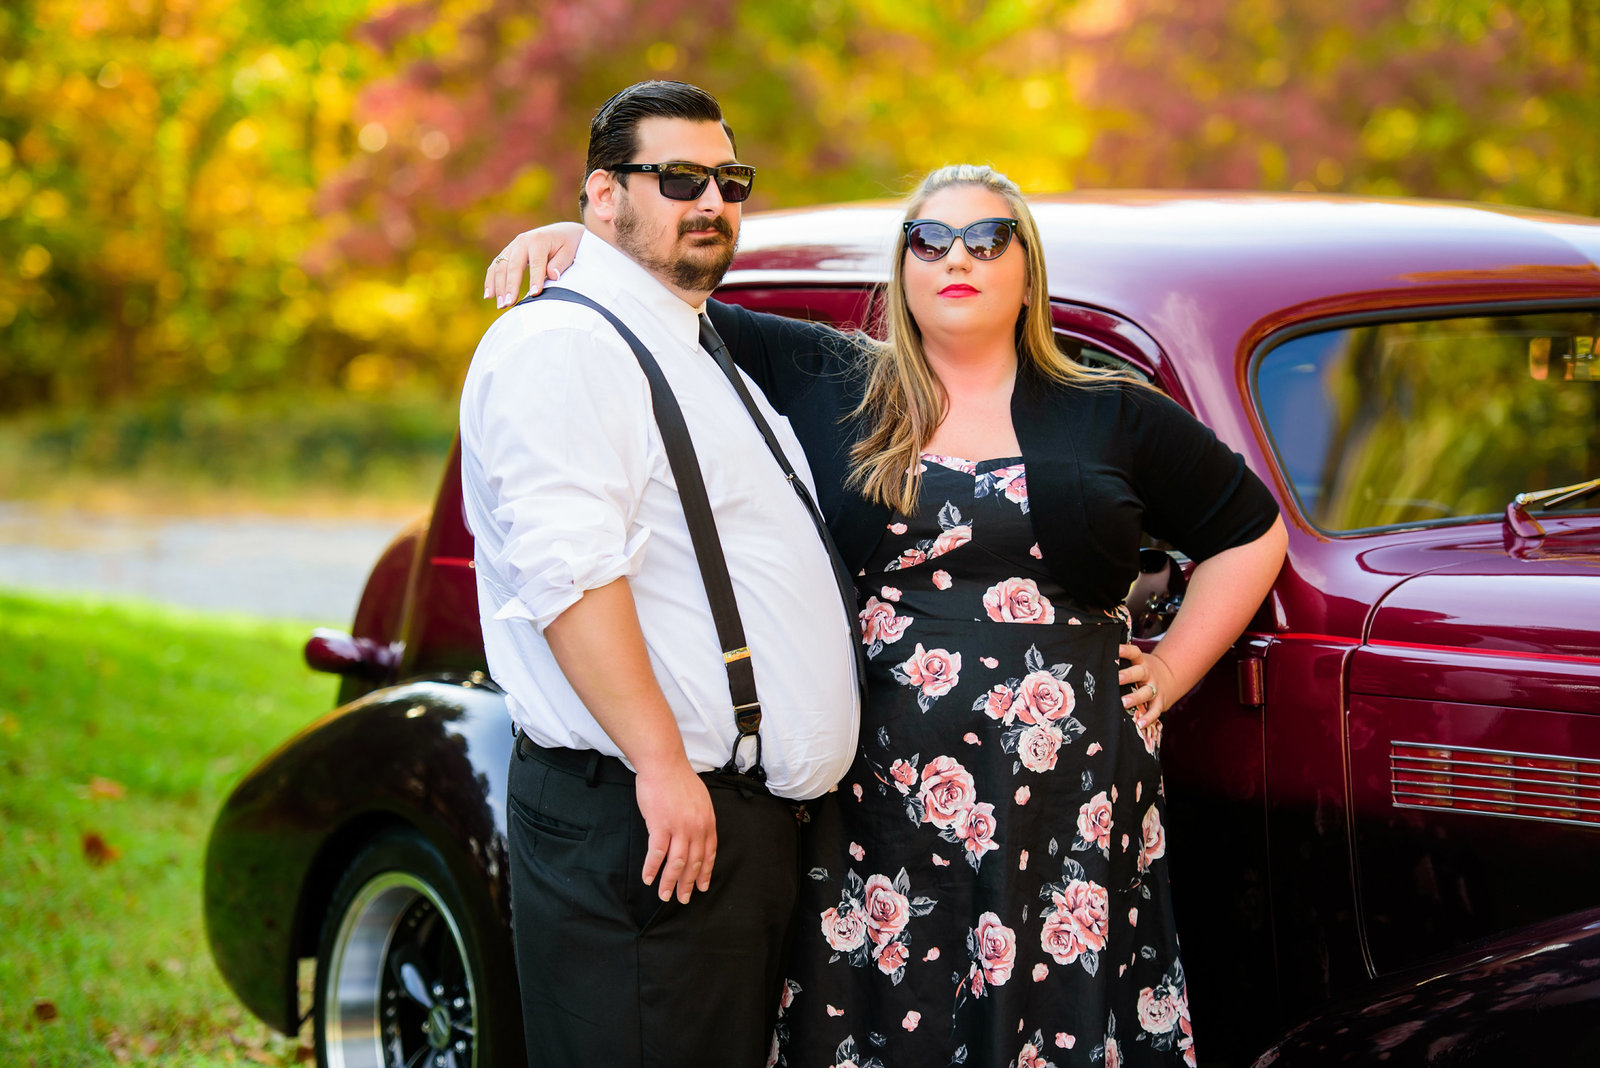 Retro_Pinup_Car_engagement_session_Nj004